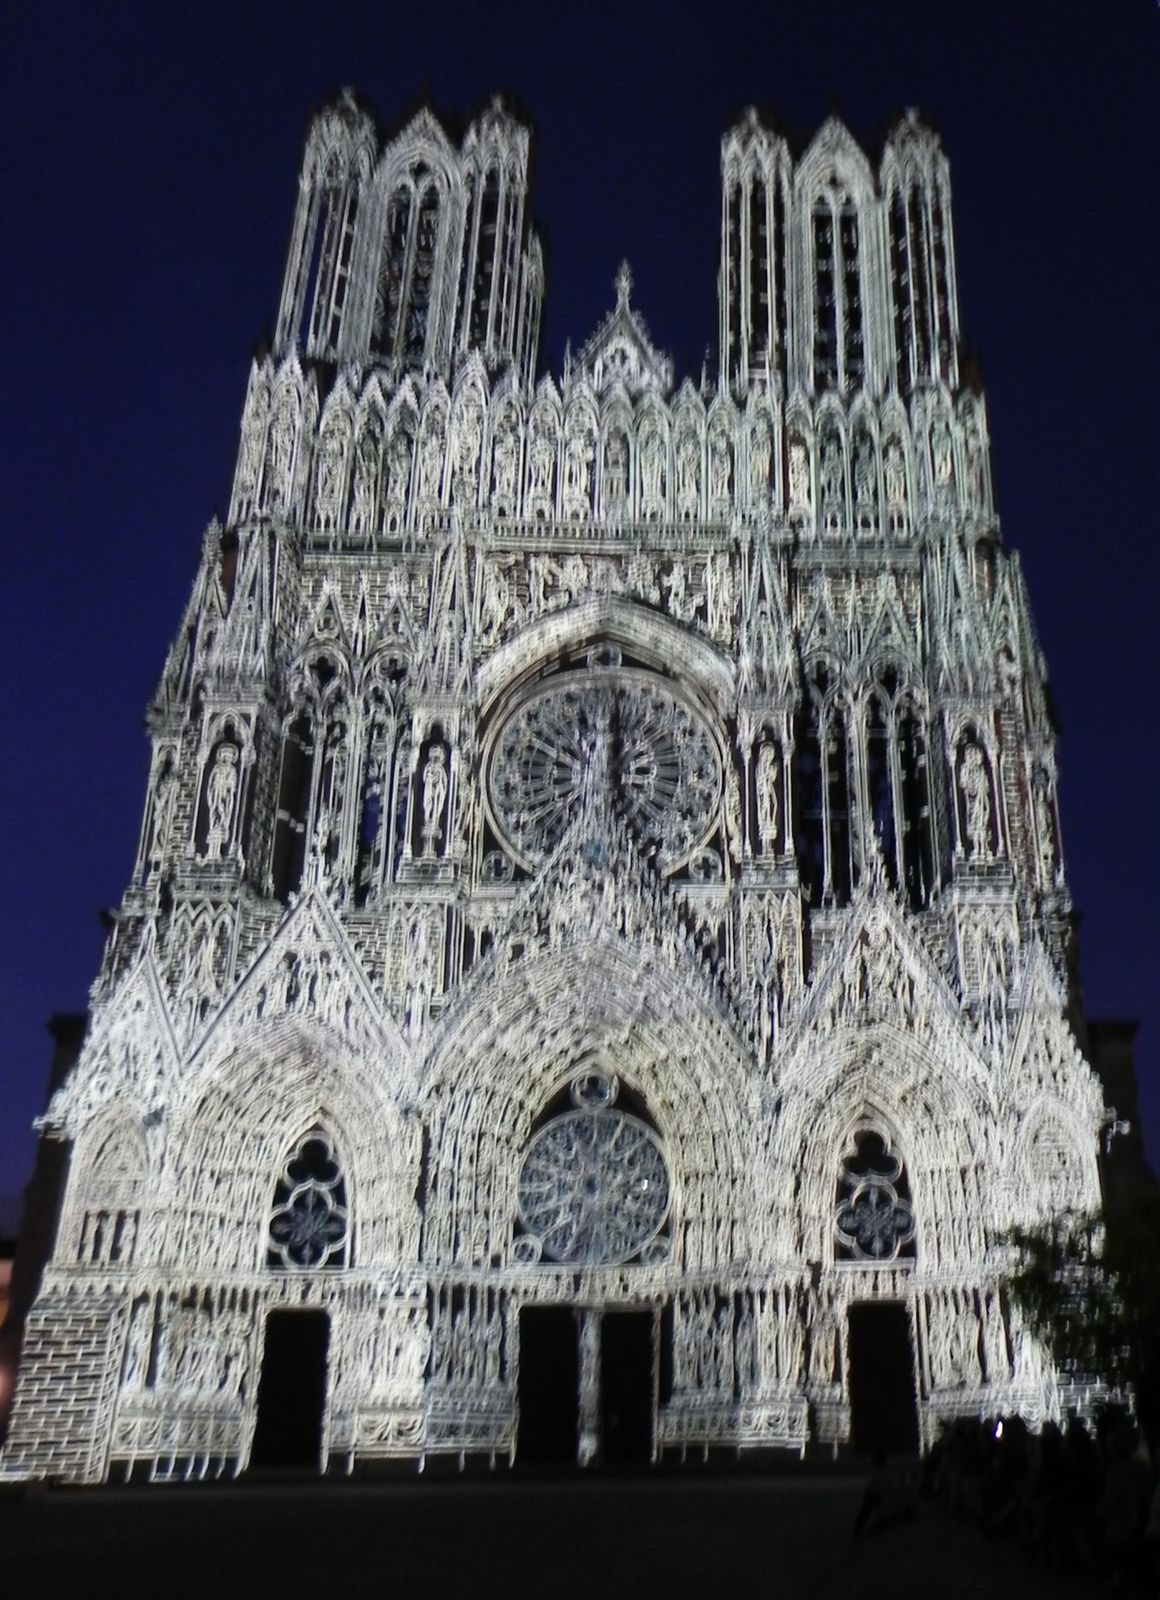 Illumination de la cathédrale de Reims (1)